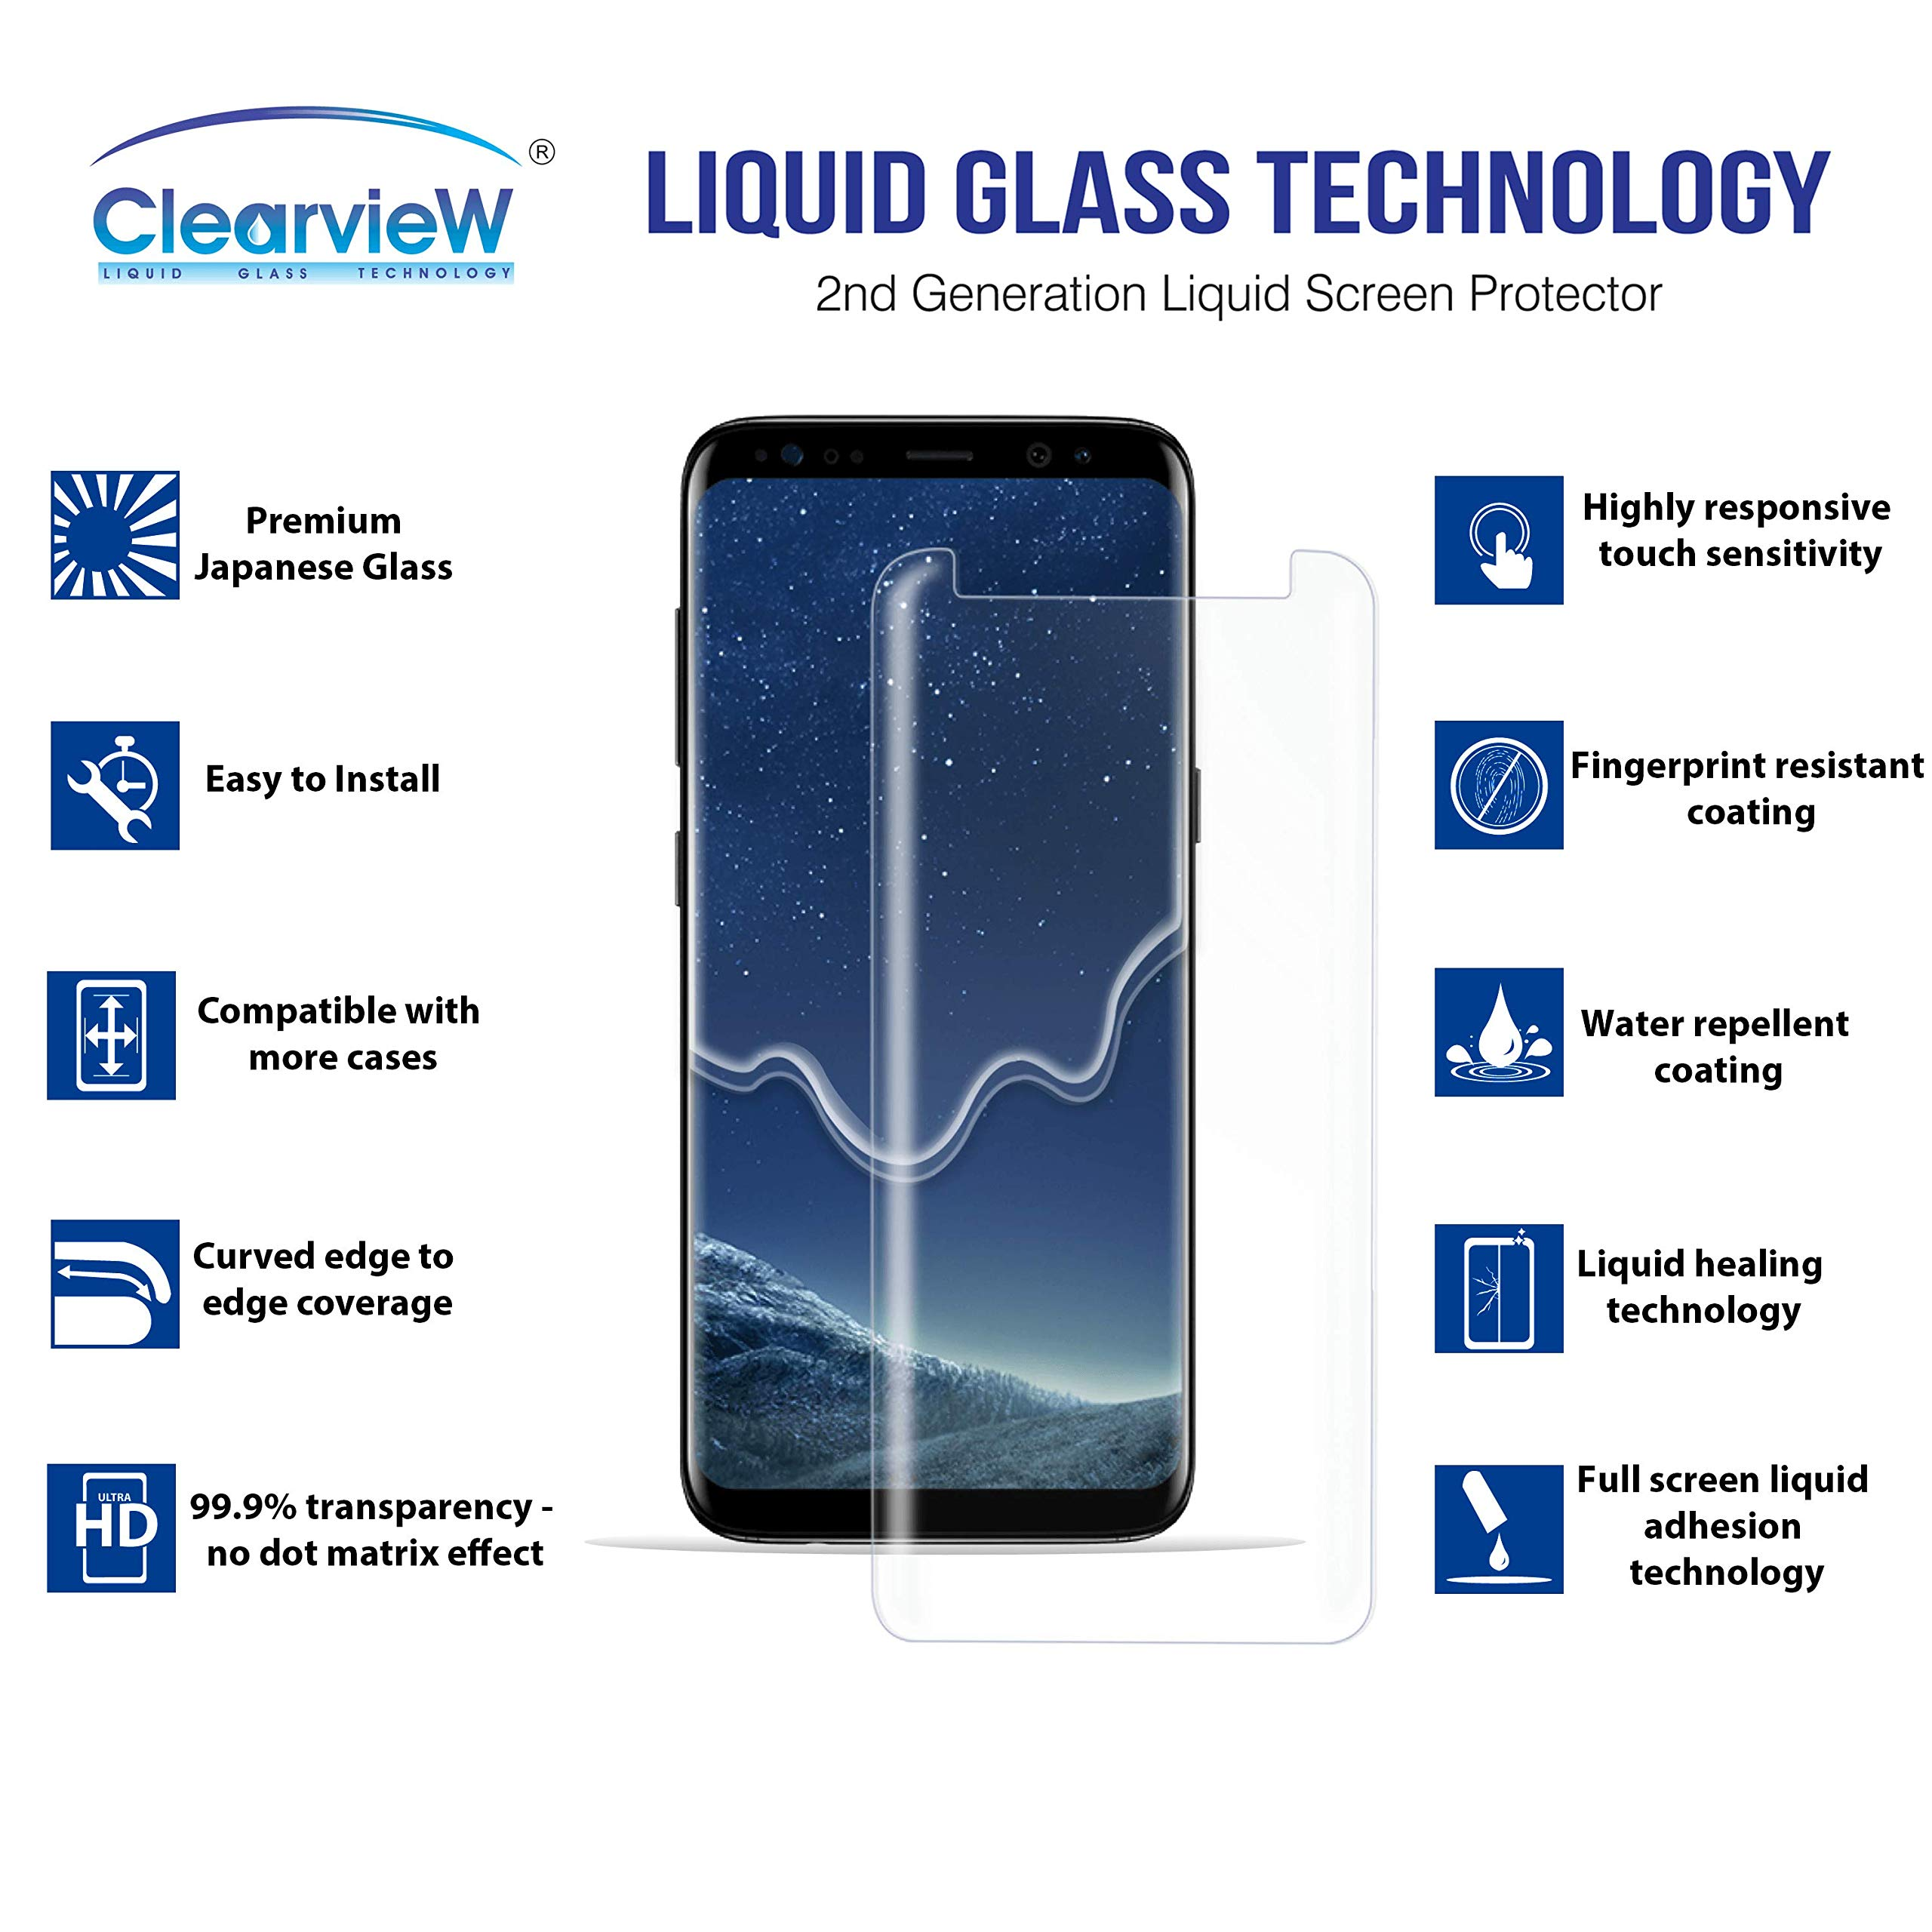 Clearview Samsung Galaxy S8 Liquid Tempered Glass Screen Protector - 9H Ultra Clear HD Japanese Glass, Full Screen Edge Coverage, Easy Install, Loca UV Light, Case Friendly (Full Kit) by Clearview (Image #2)